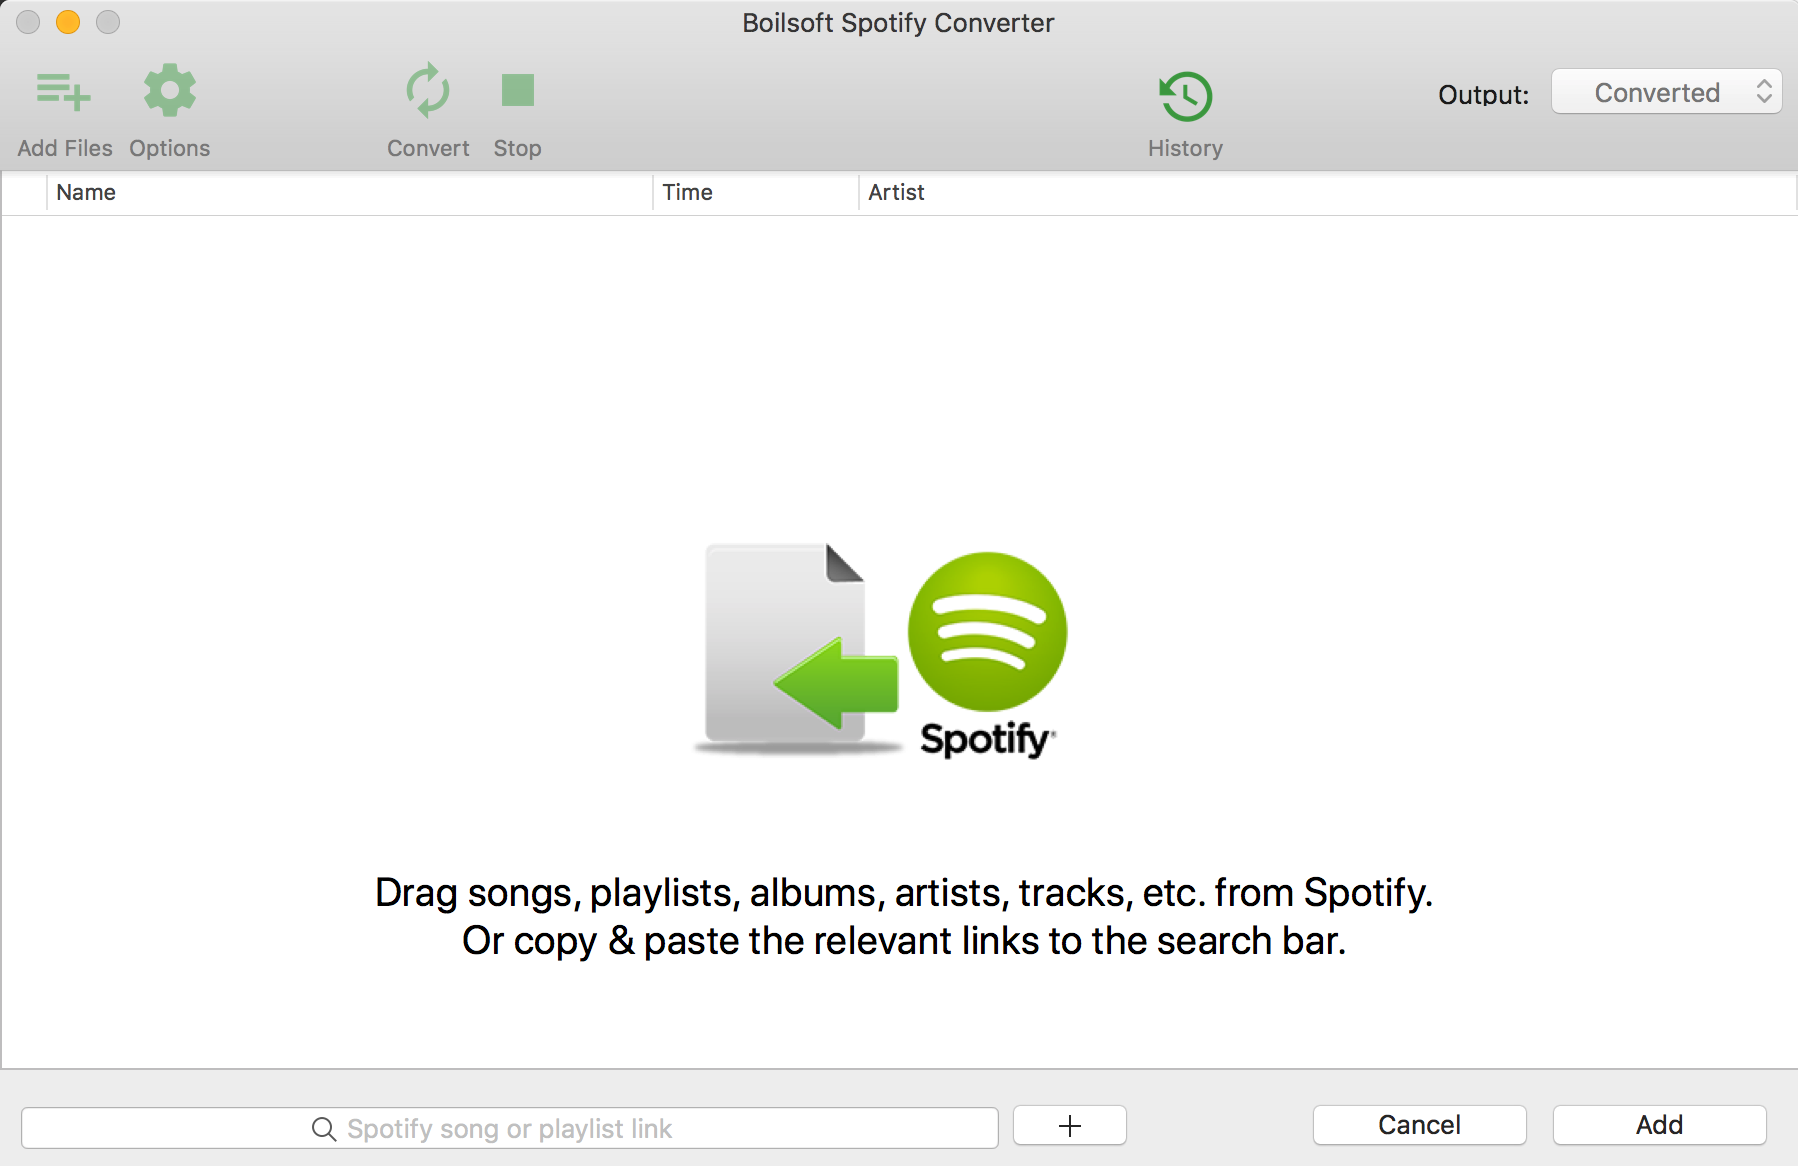 How to transfer Spotify music to Google Play Music?